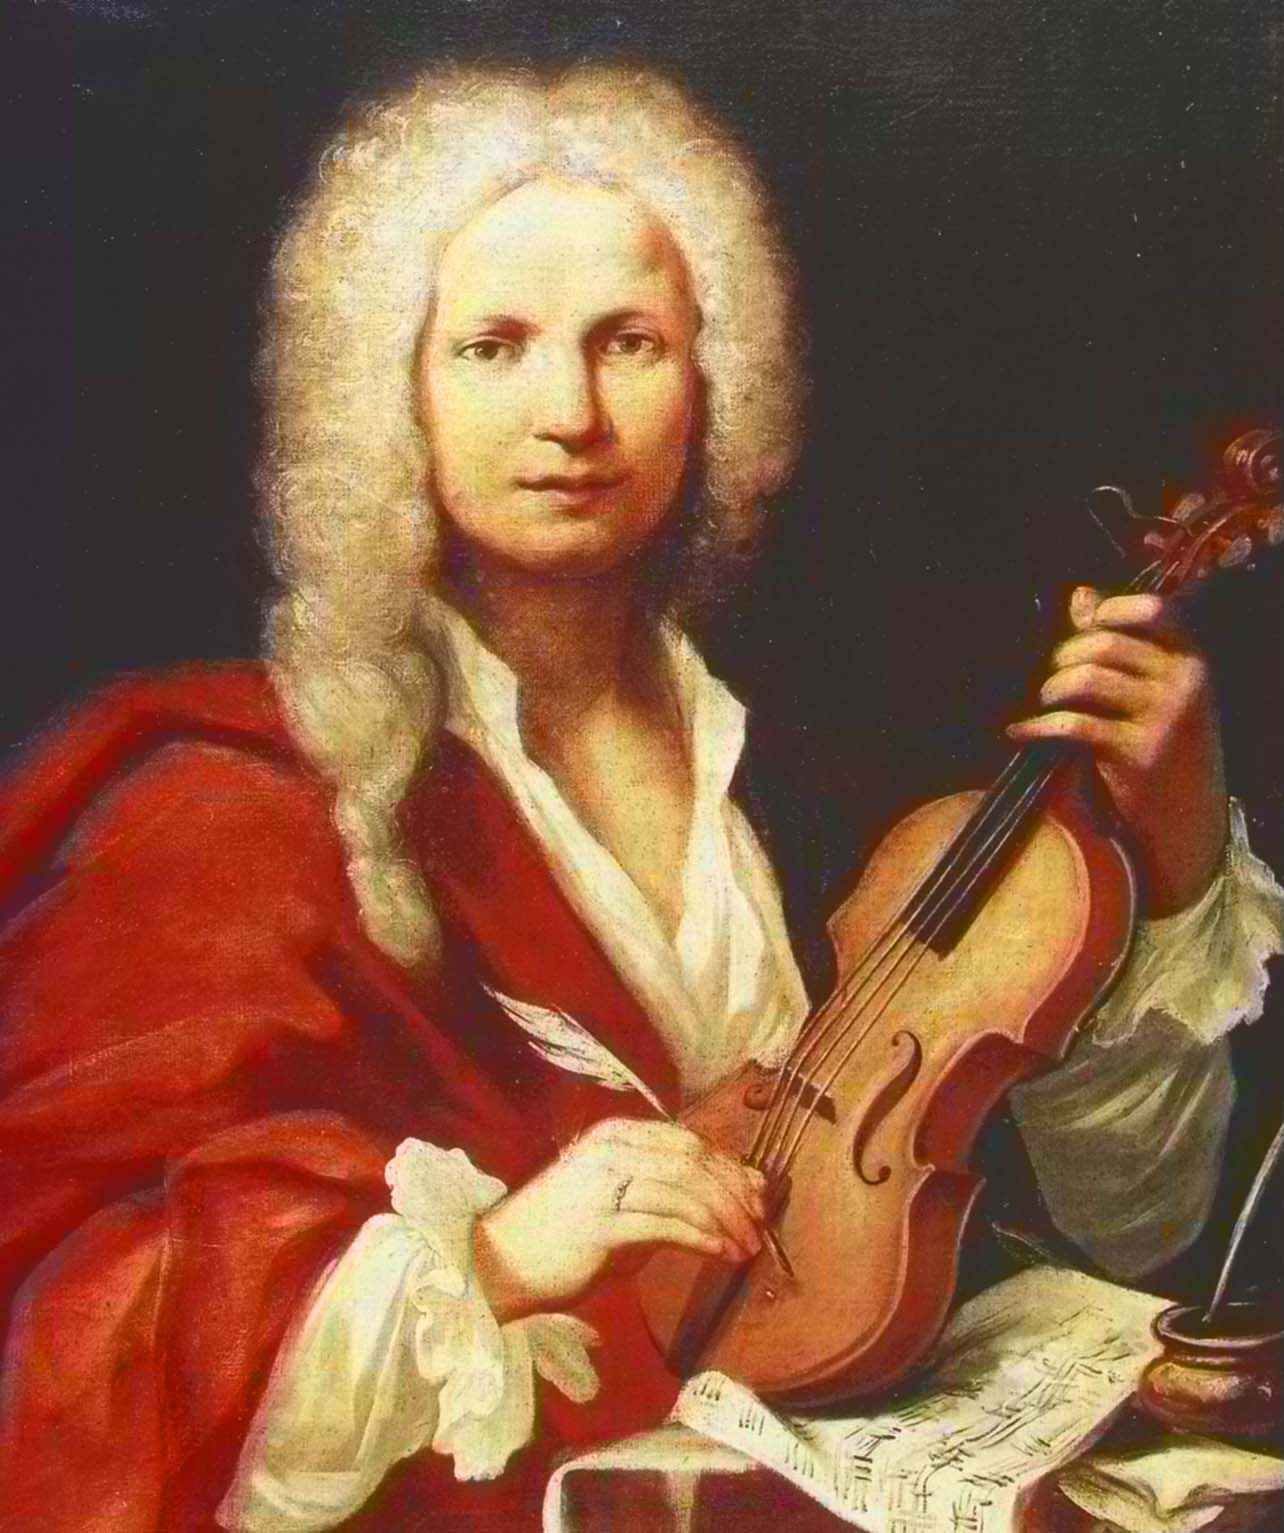 http://upload.wikimedia.org/wikipedia/commons/b/bd/Vivaldi.jpg